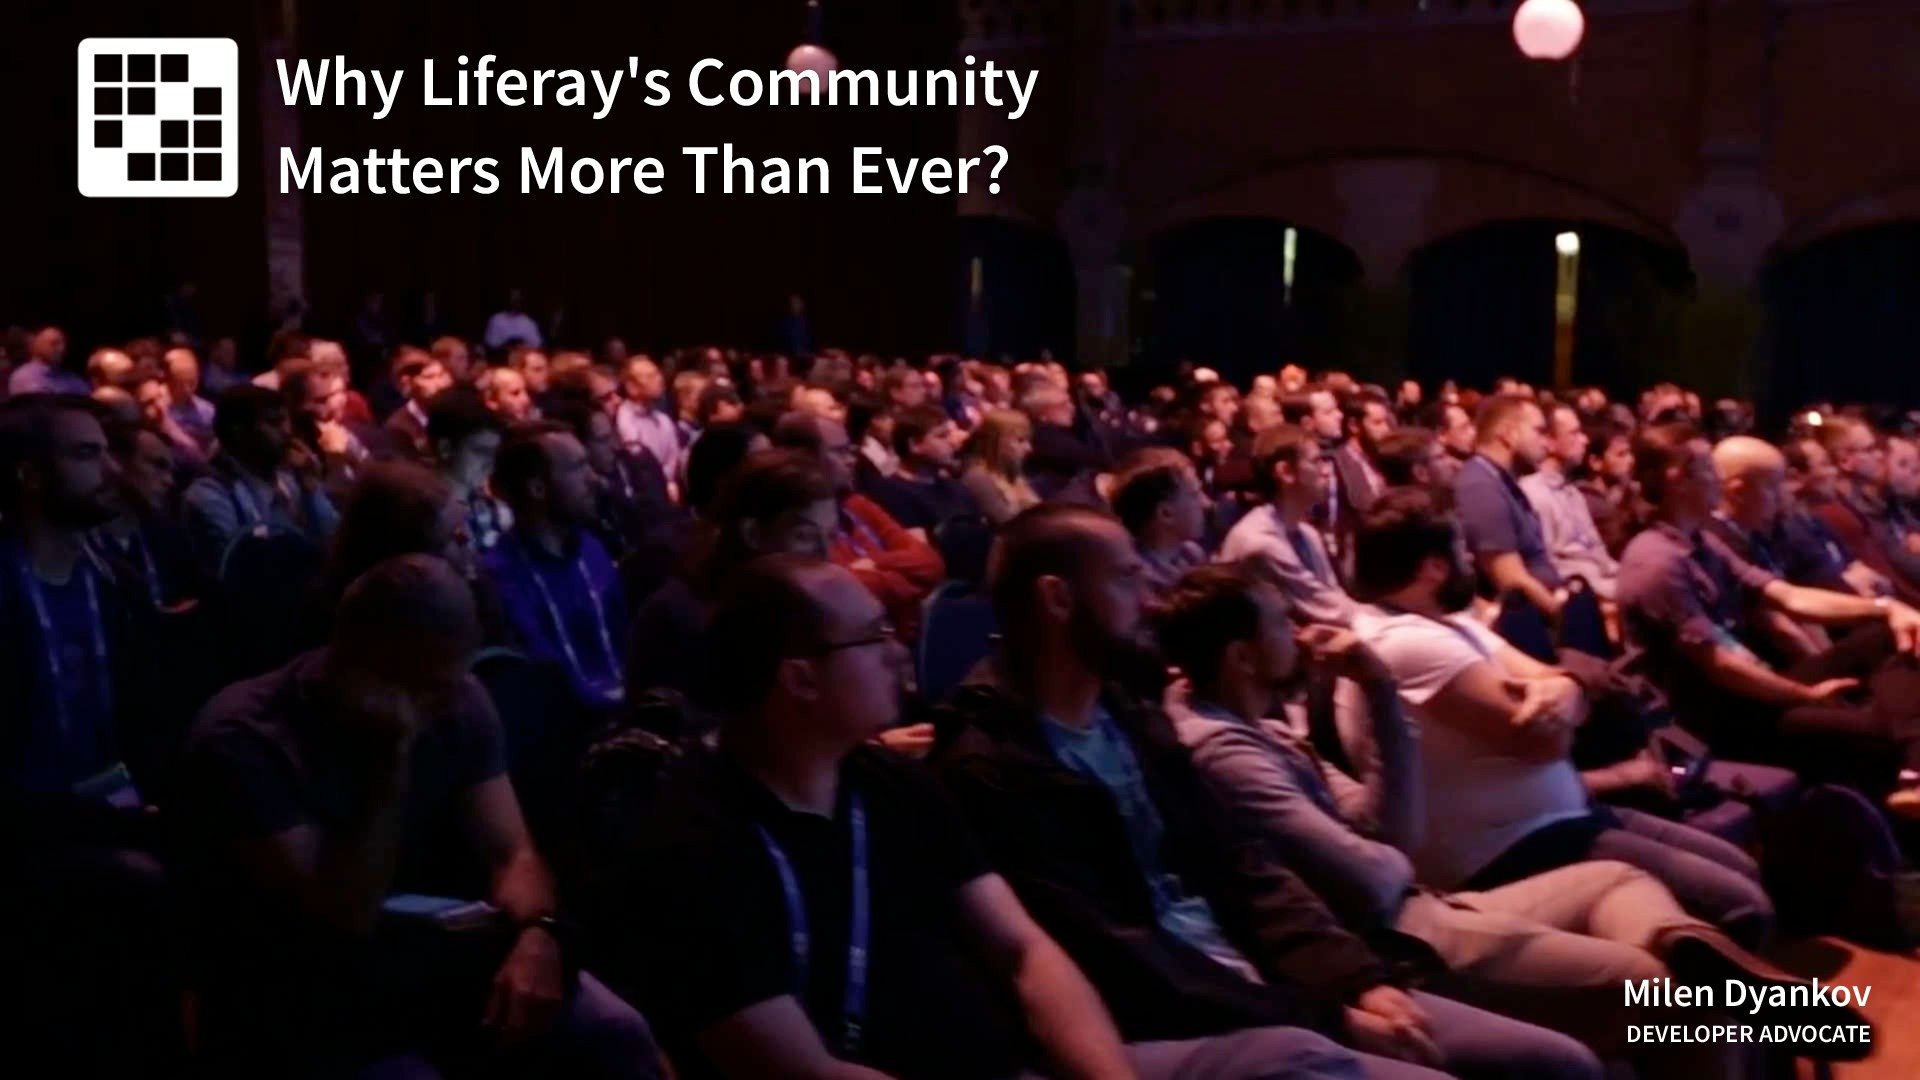 Why Liferay's Community Matters More Than Ever!